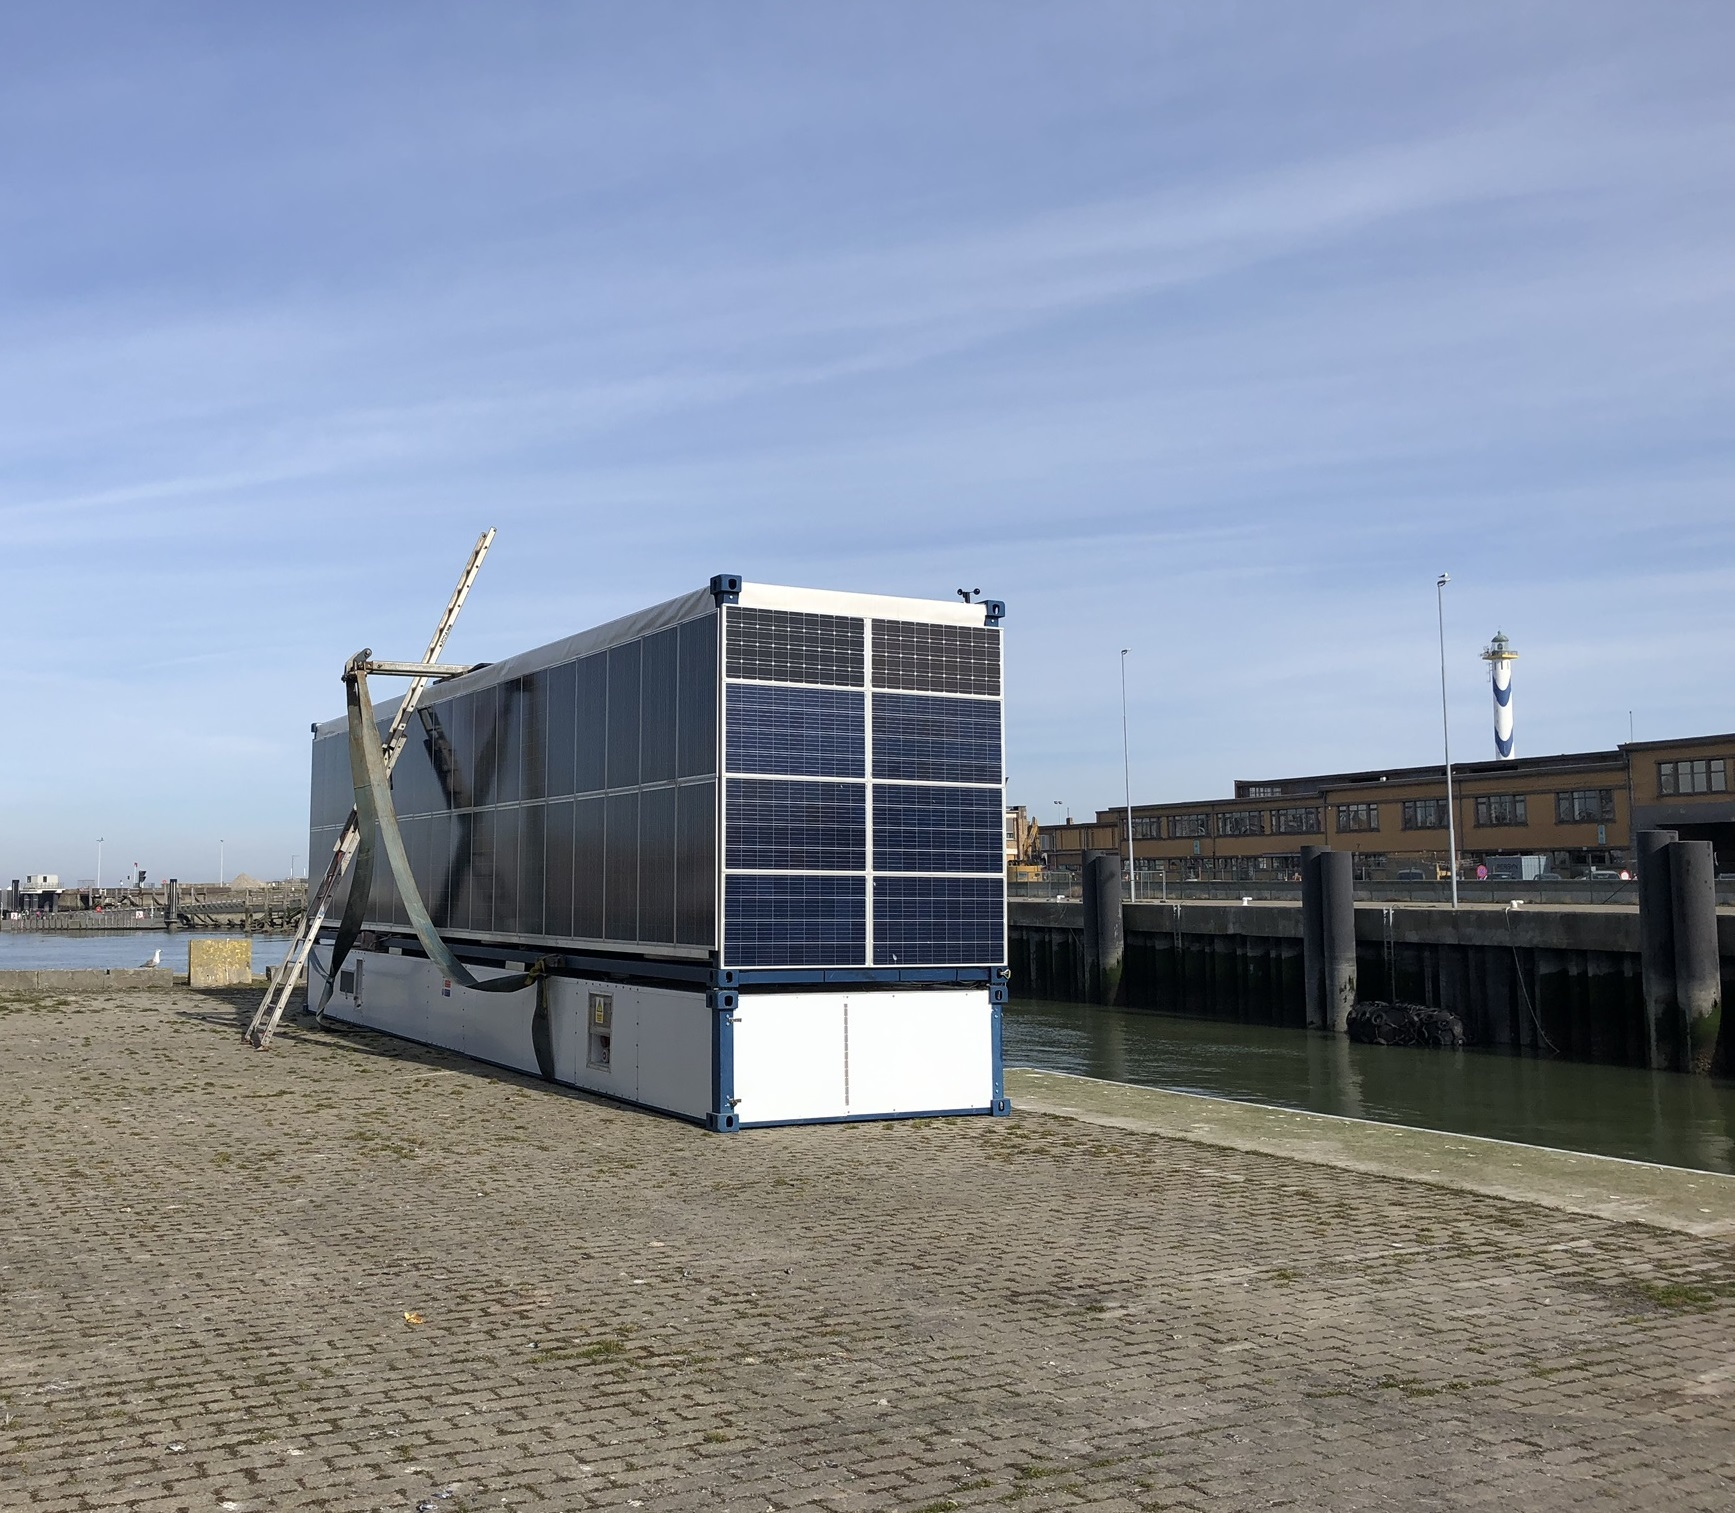 BPS launches energy pontoon on docks in port of Ostend